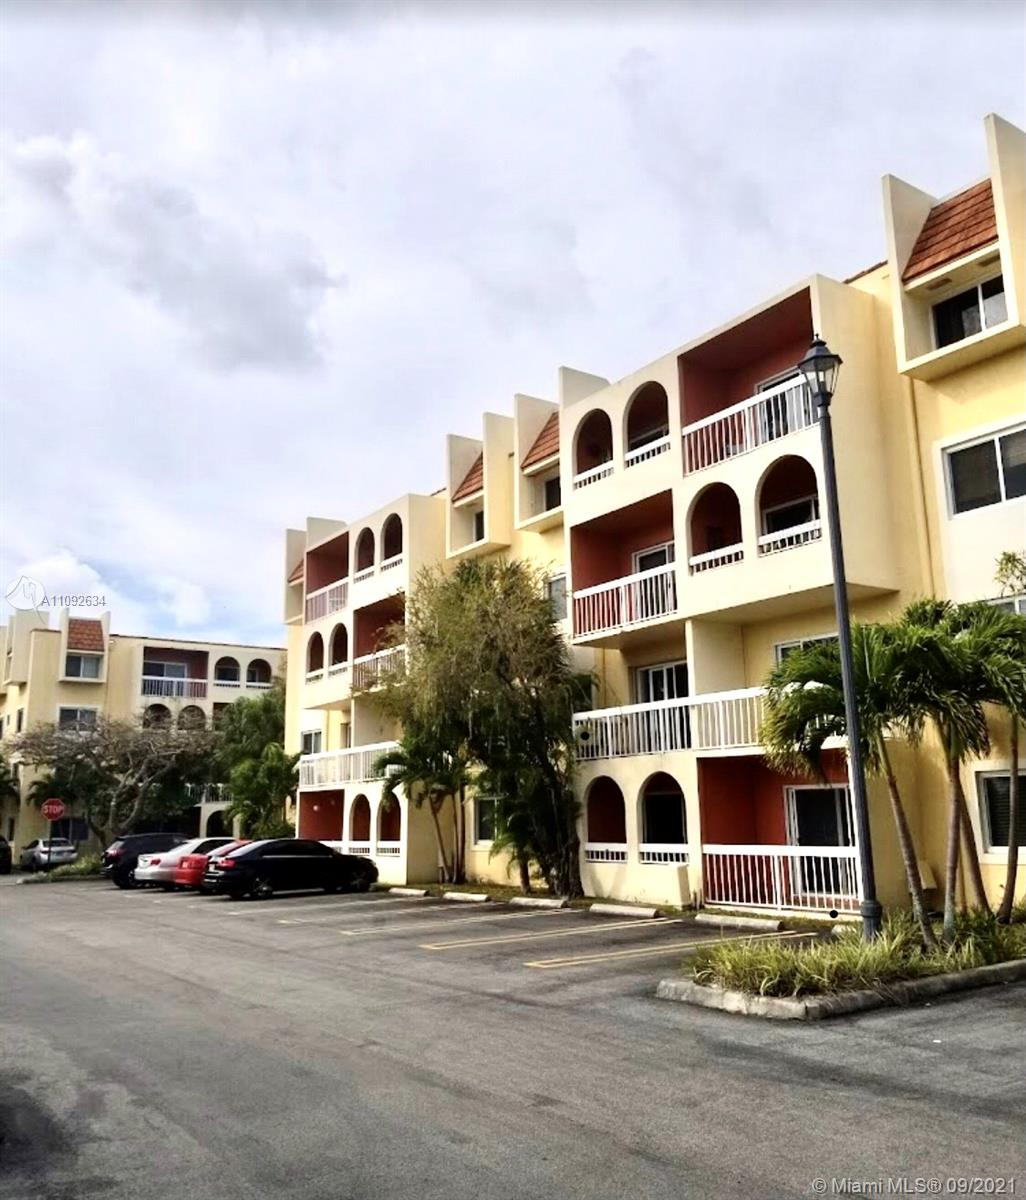 KINGS CREEK 1/1 WITH CANAL VIEW!  FULLY TILED WITH SECOND FLOOR LOCATION!   EXCELLENT AMENITIES WHICH INCLUDE COMMUNITY POOLS, TENNIS COURTS, ROAMING SECURITY PLUS ON SITE MANAGEMENT.  CLOSE PROXIMITY TO DADELAND MALL, METRORAIL, BAPTIST HOSPTIAL. CALL L/A TO SHOW.